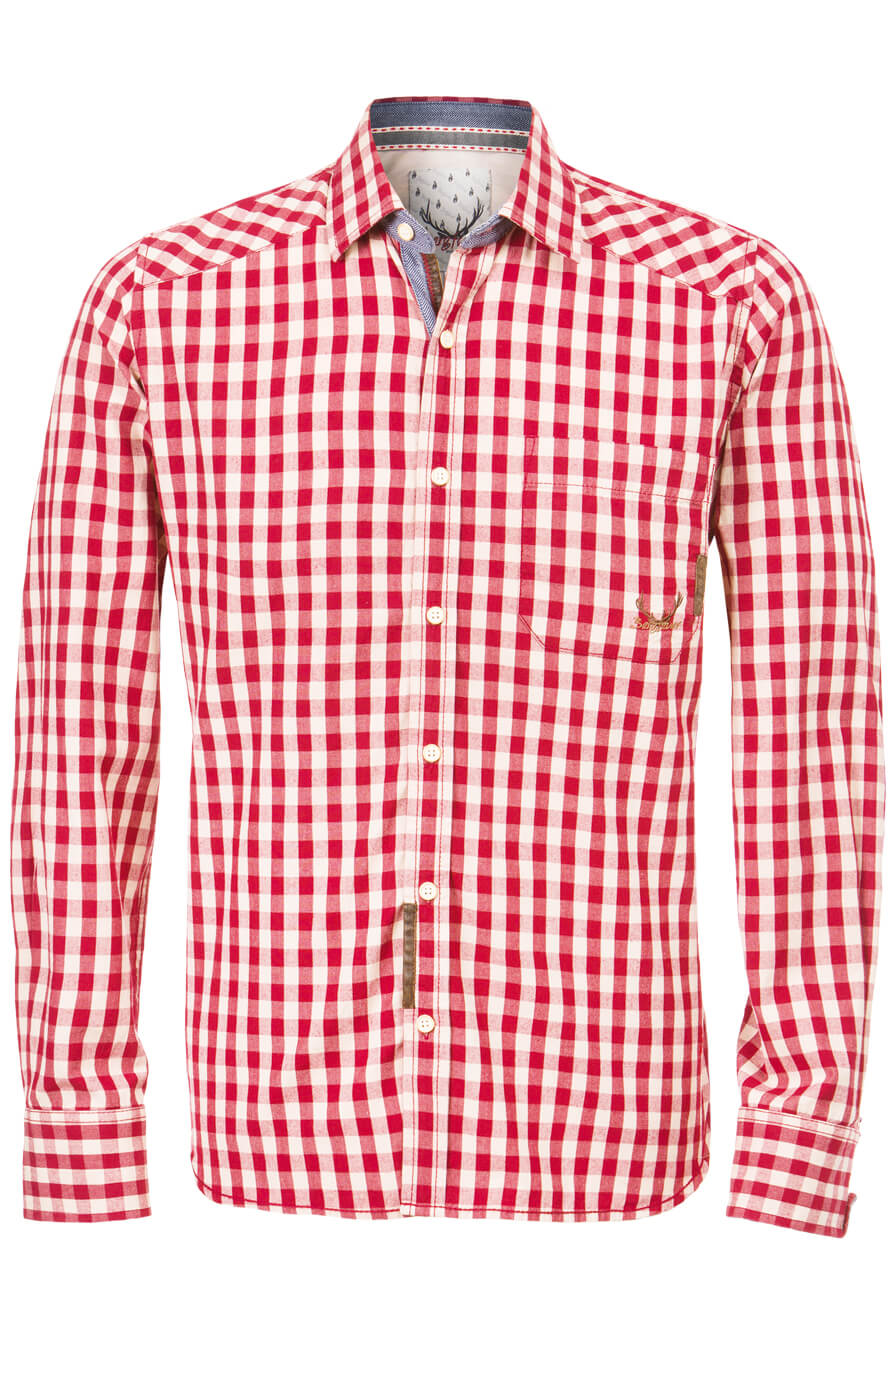 weitere Bilder von German traditional shirt Tom darkred